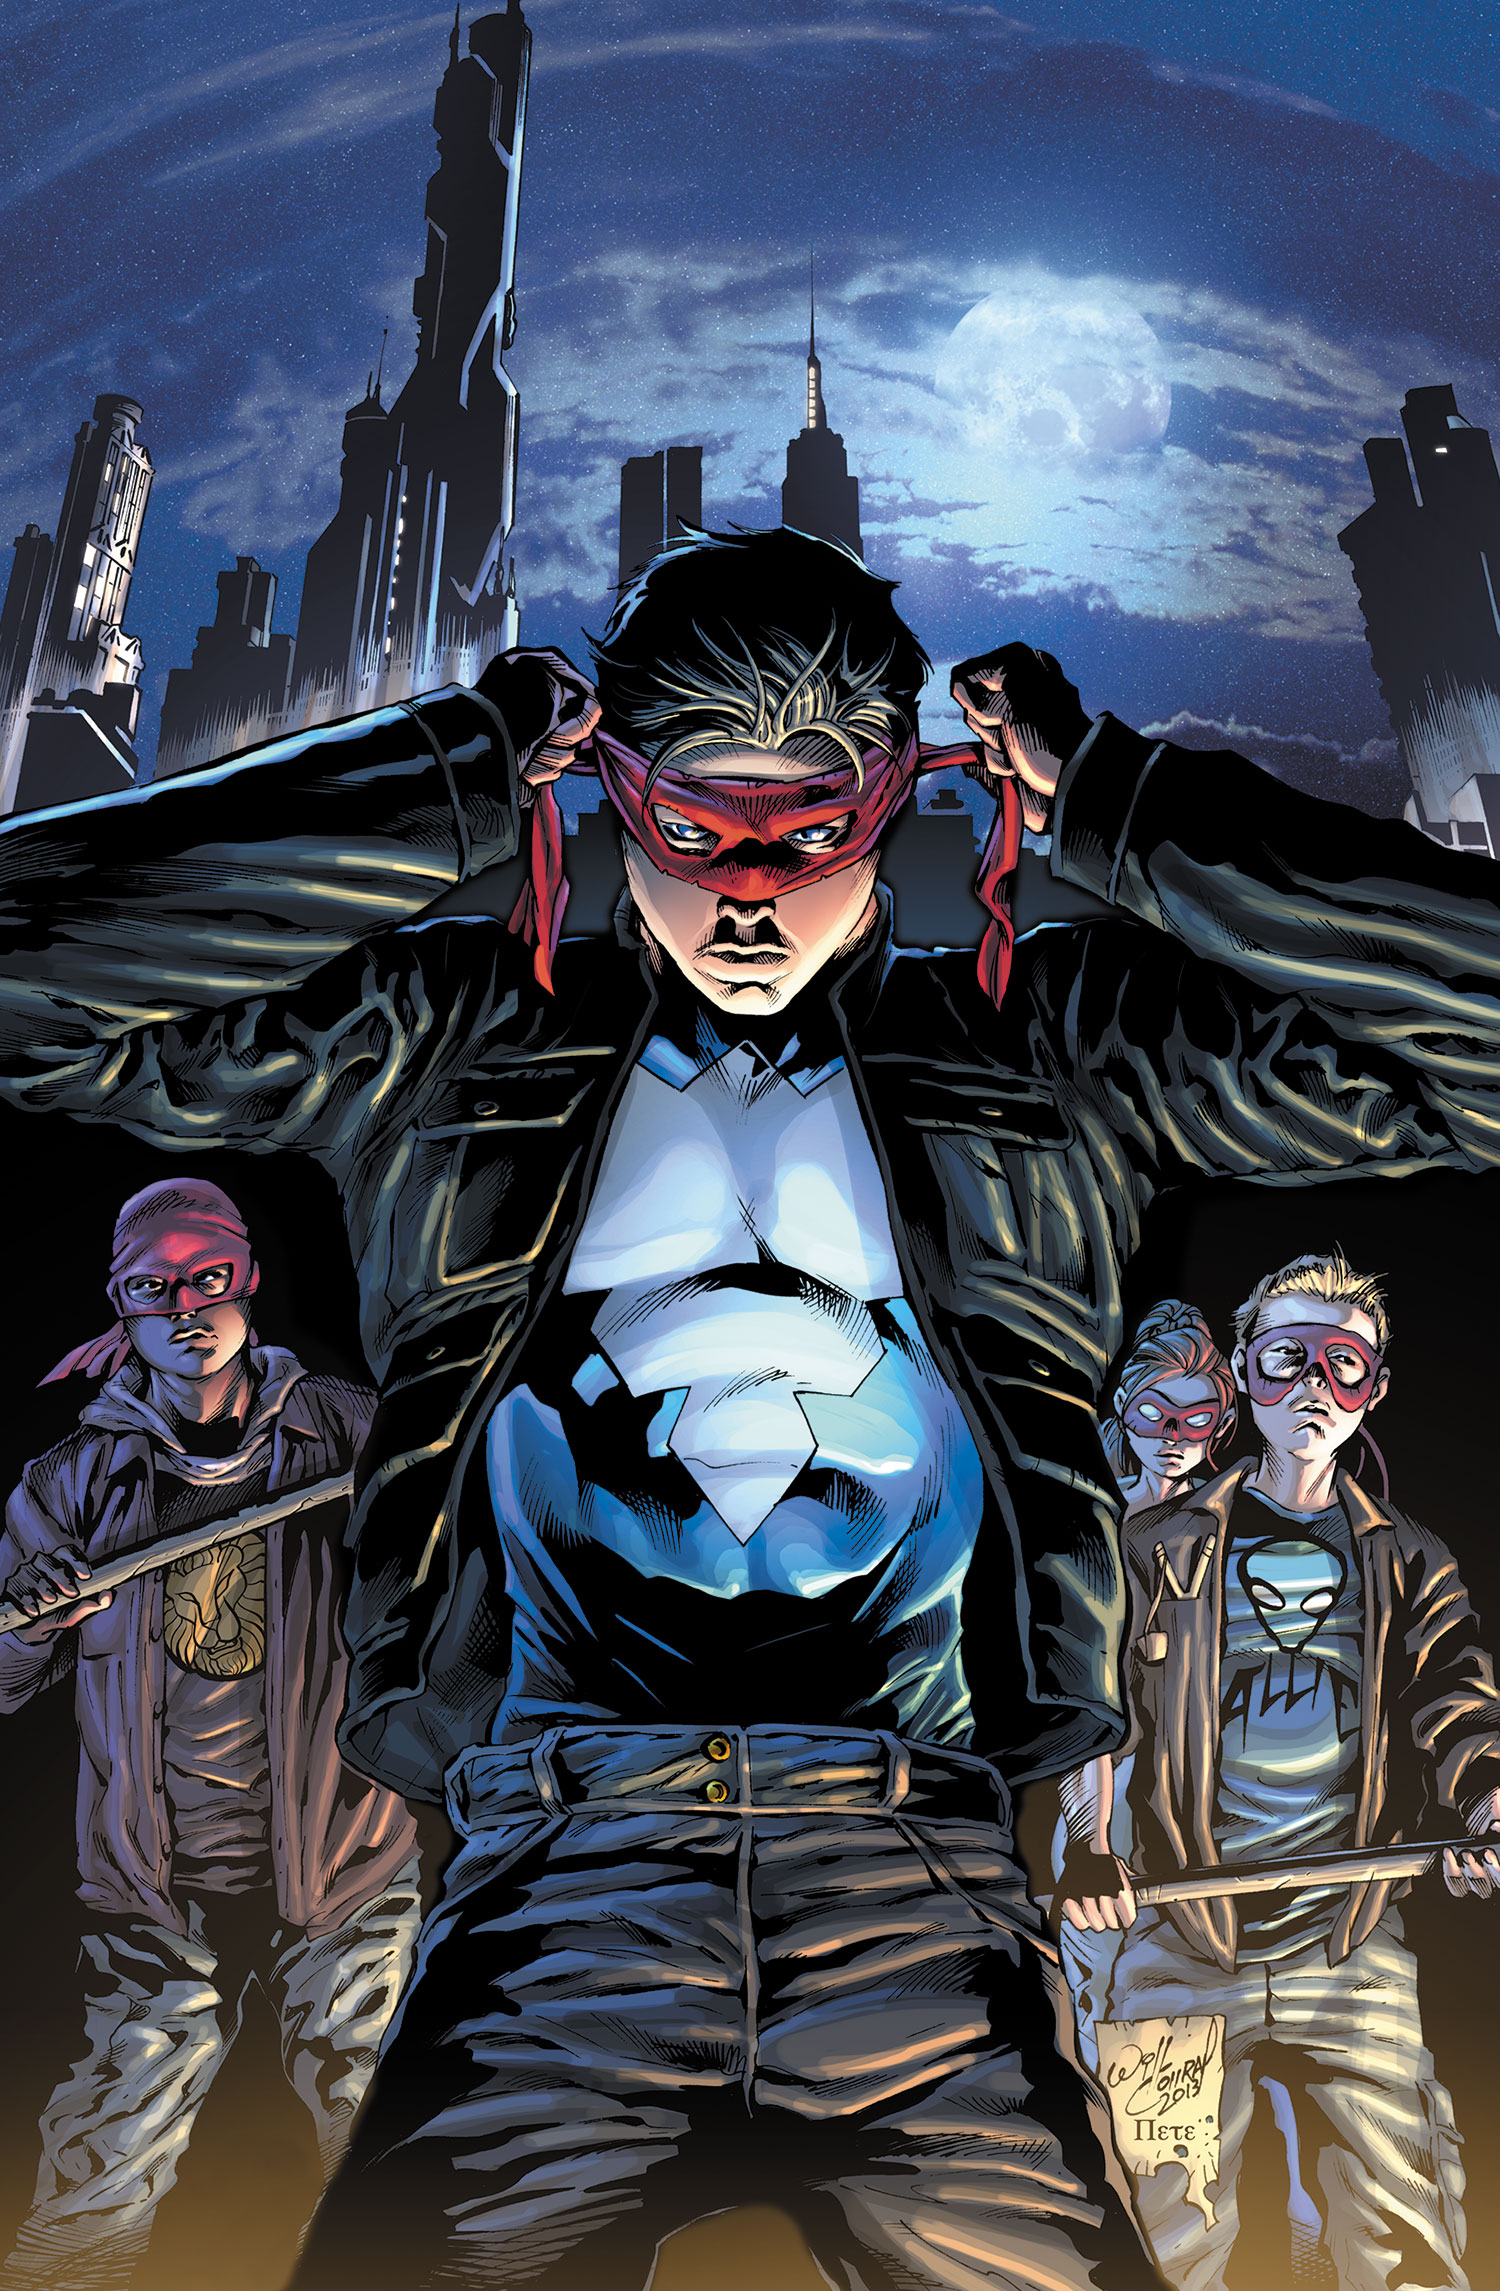 Nightwing25 jpgDick Grayson New 52 Nightwing